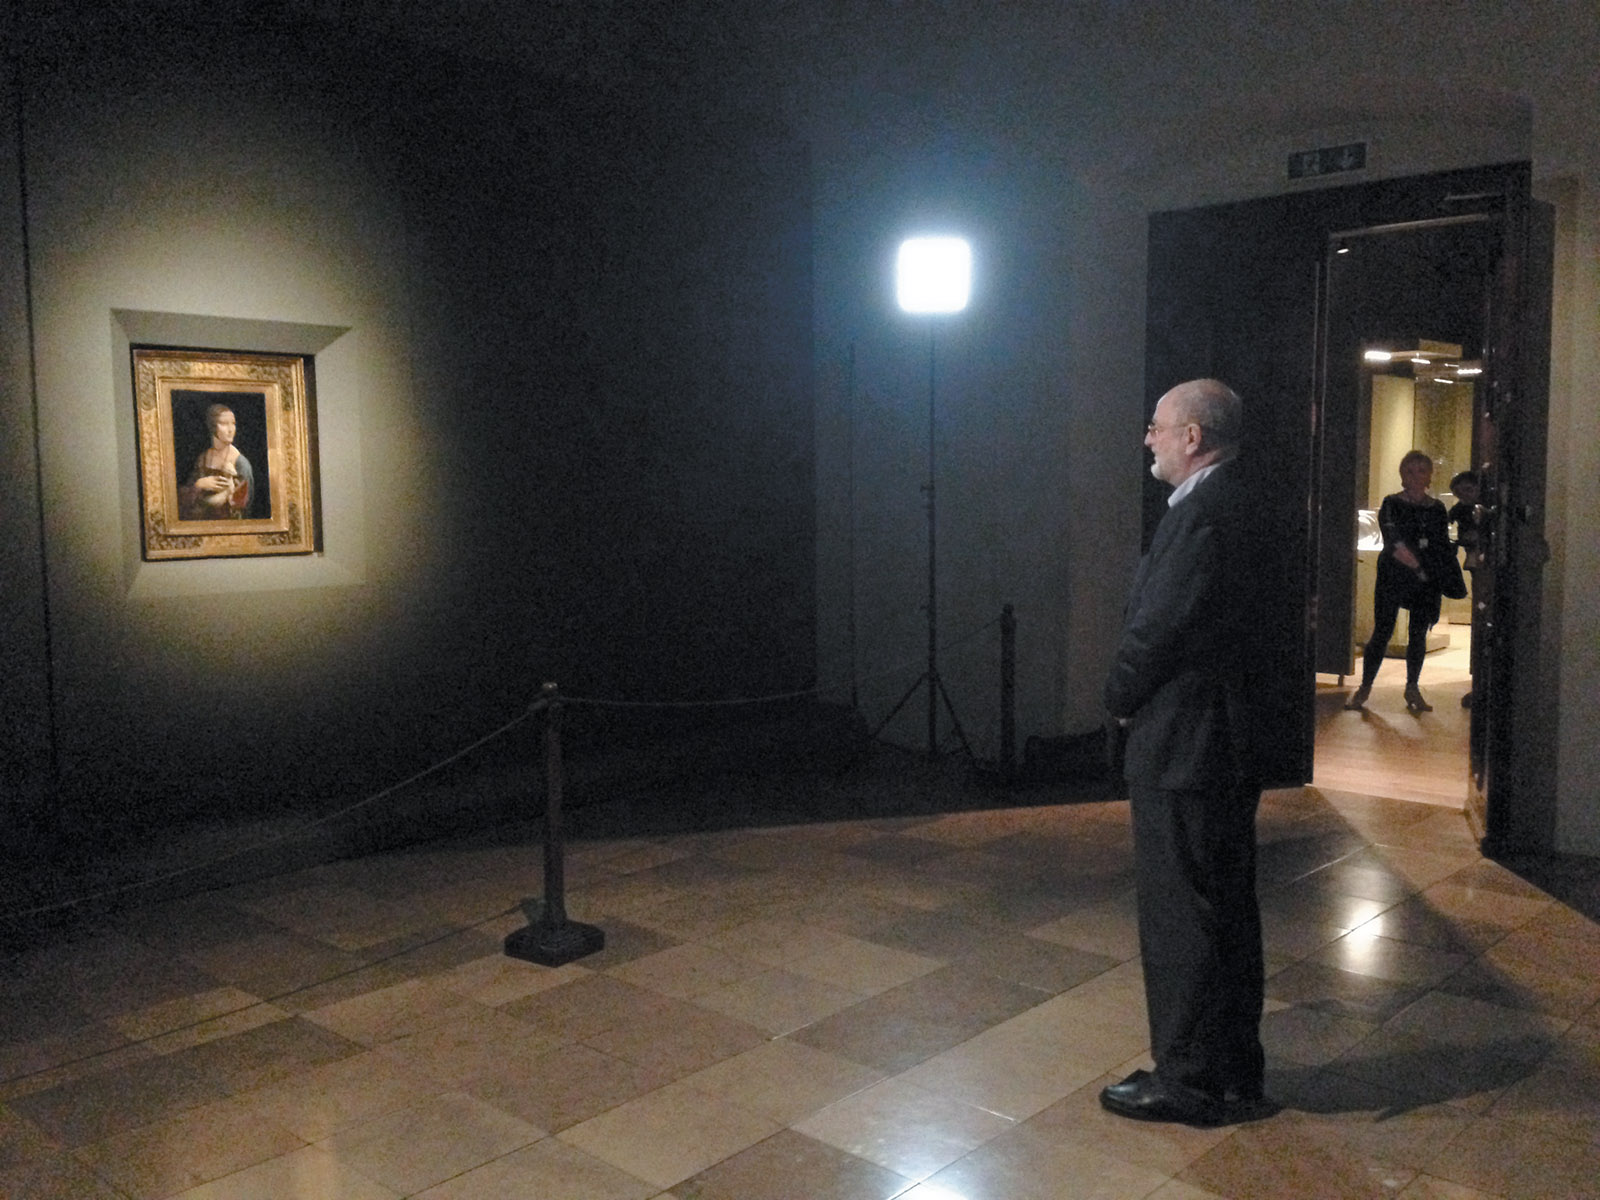 Niklas Frank—son of Hans Frank, Adolf Hitler's personal lawyer—looking at Leonardo da Vinci's Lady with an Ermine for the first time since he was a small child, Wawel Castle, Kraków, January 2014. According to Philippe Sands in East West Street, the elder Frank confiscated the painting from a Polish museum for 'protective' reasons while he was governor-general of Nazi-occupied Poland, and kept it in his private rooms at the castle.